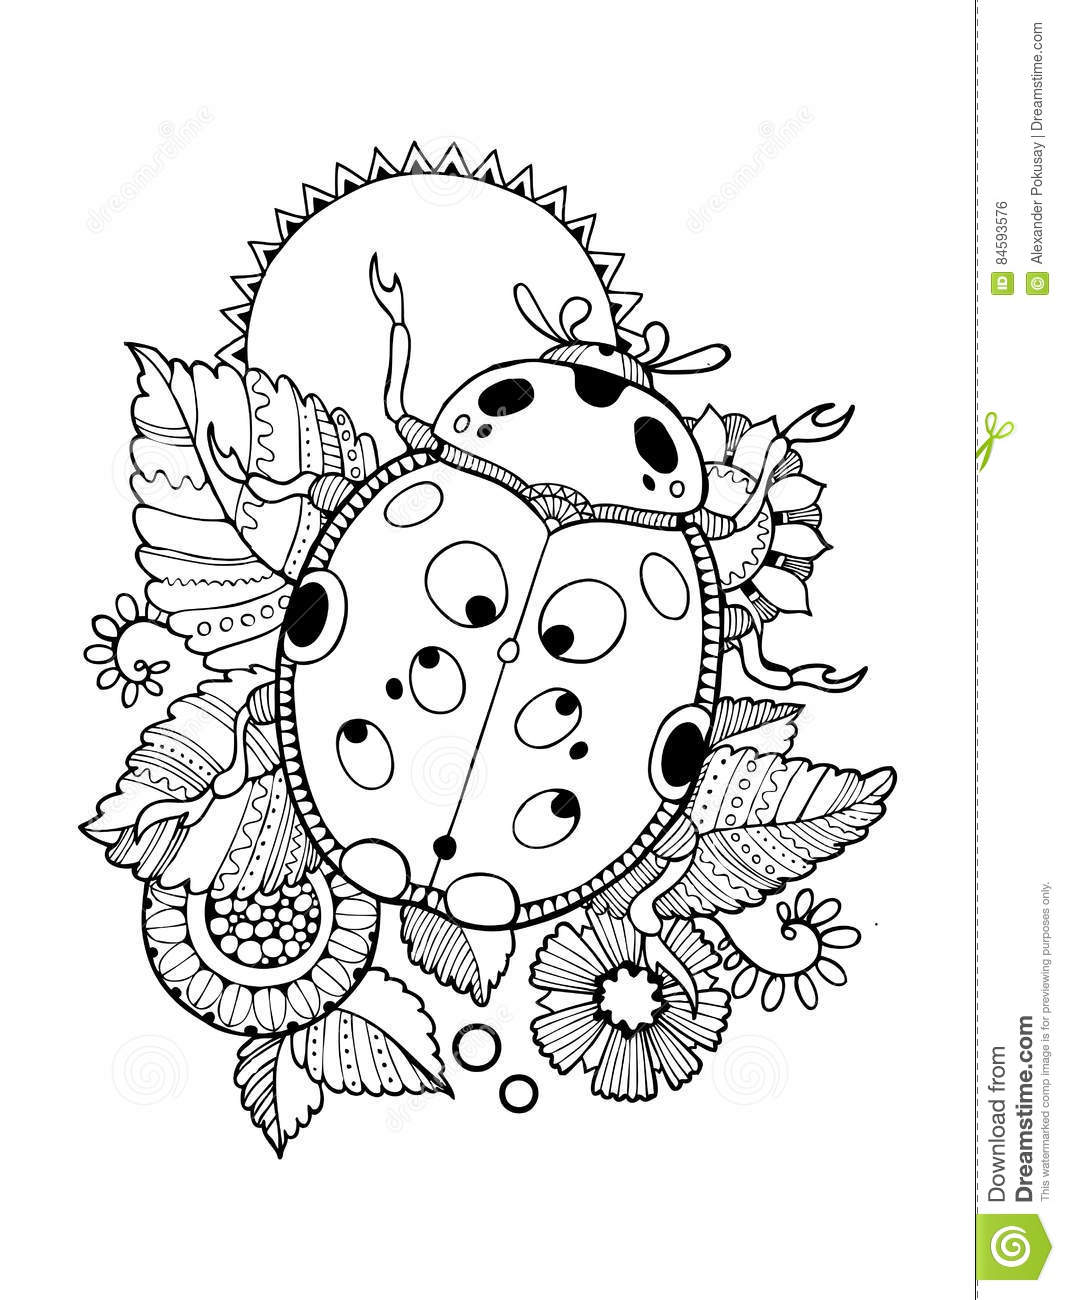 Ladybug Coloring Book Vector Illustration Stock Vector